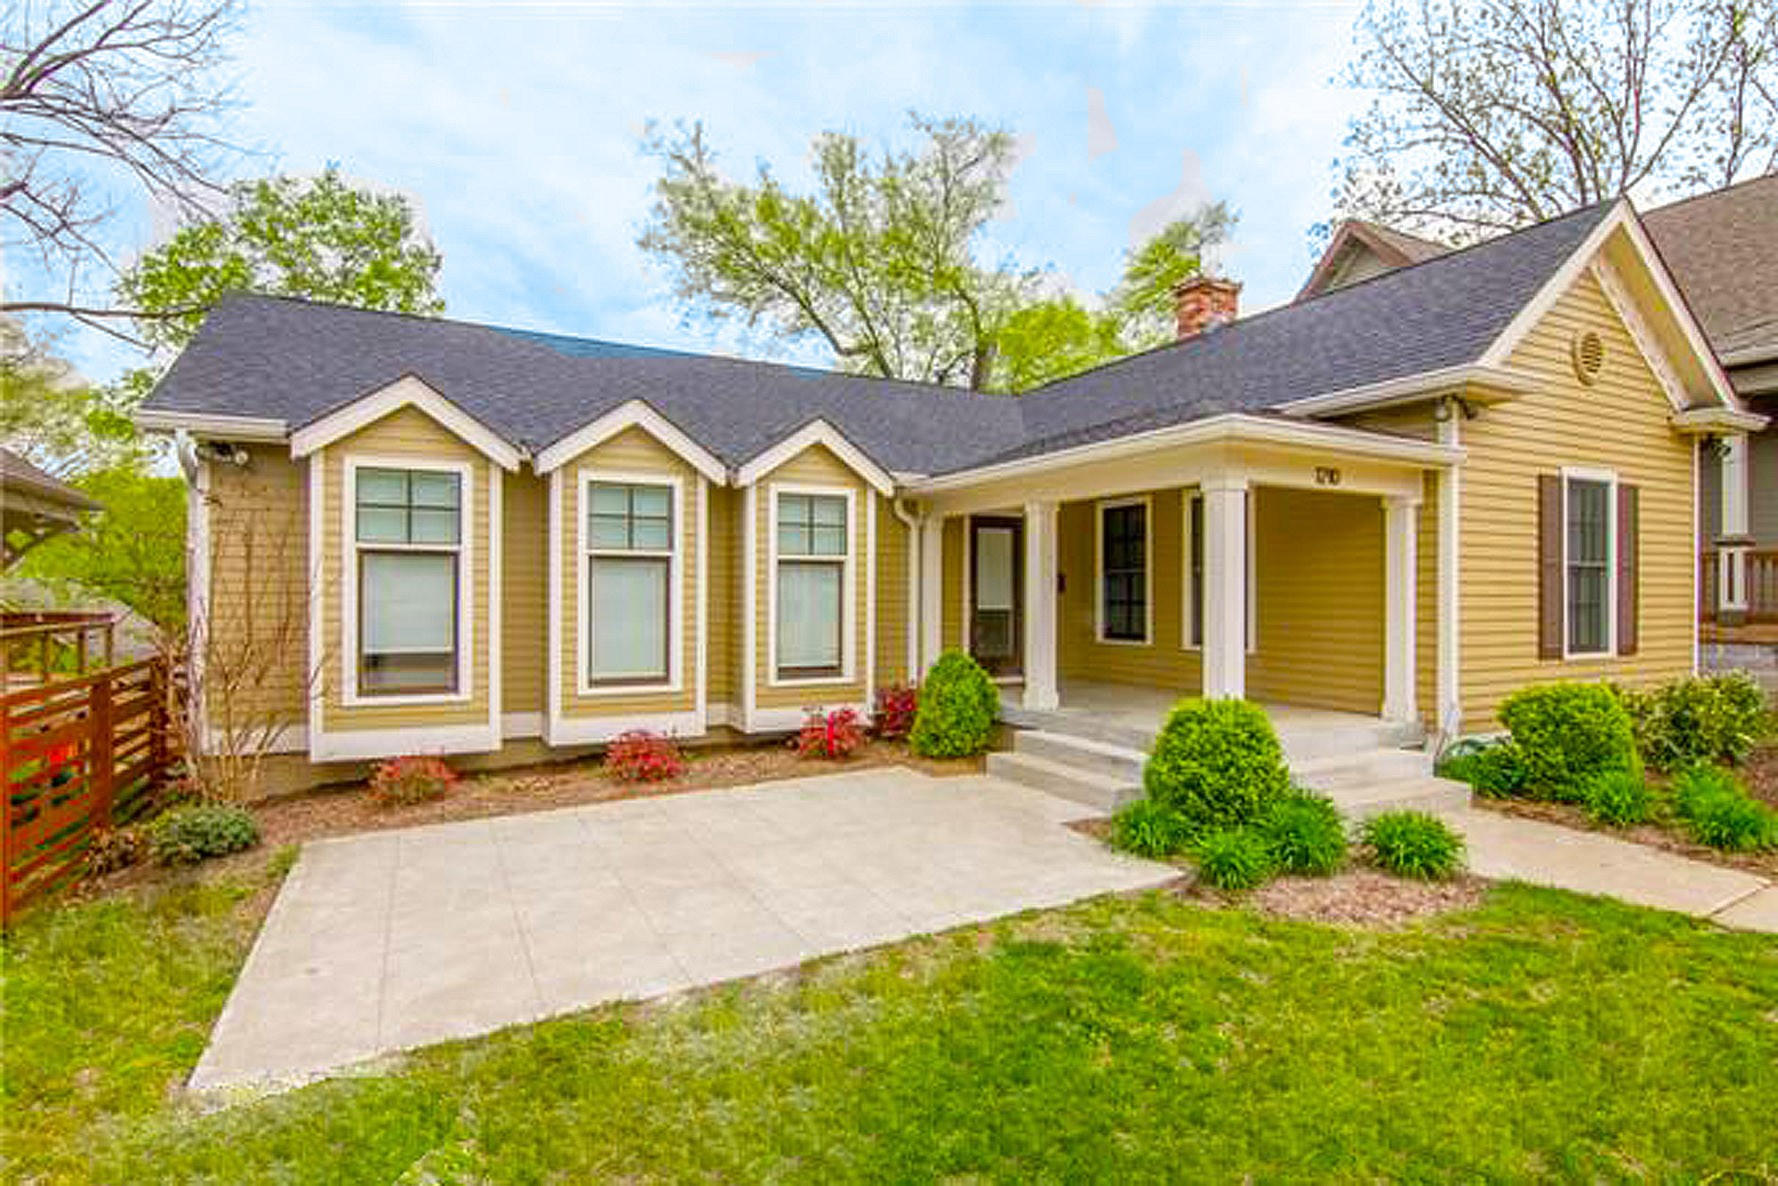 Stylish And Impeccable 3 Bedroom Cottage*Large Kitchen With All Stainless Appliances, Quartz Countertops*Grand Master Bath*Open Concept Contemporary With Great Outdoor Entertaining Space*Within Walking Distance To 5 Points, Martin's Grocery, Shoppes On Fatherland And All The Amazing Restaurants*This Is A Highly Desirable Street With Picturesque Homes* East Nashville At Its BEST!